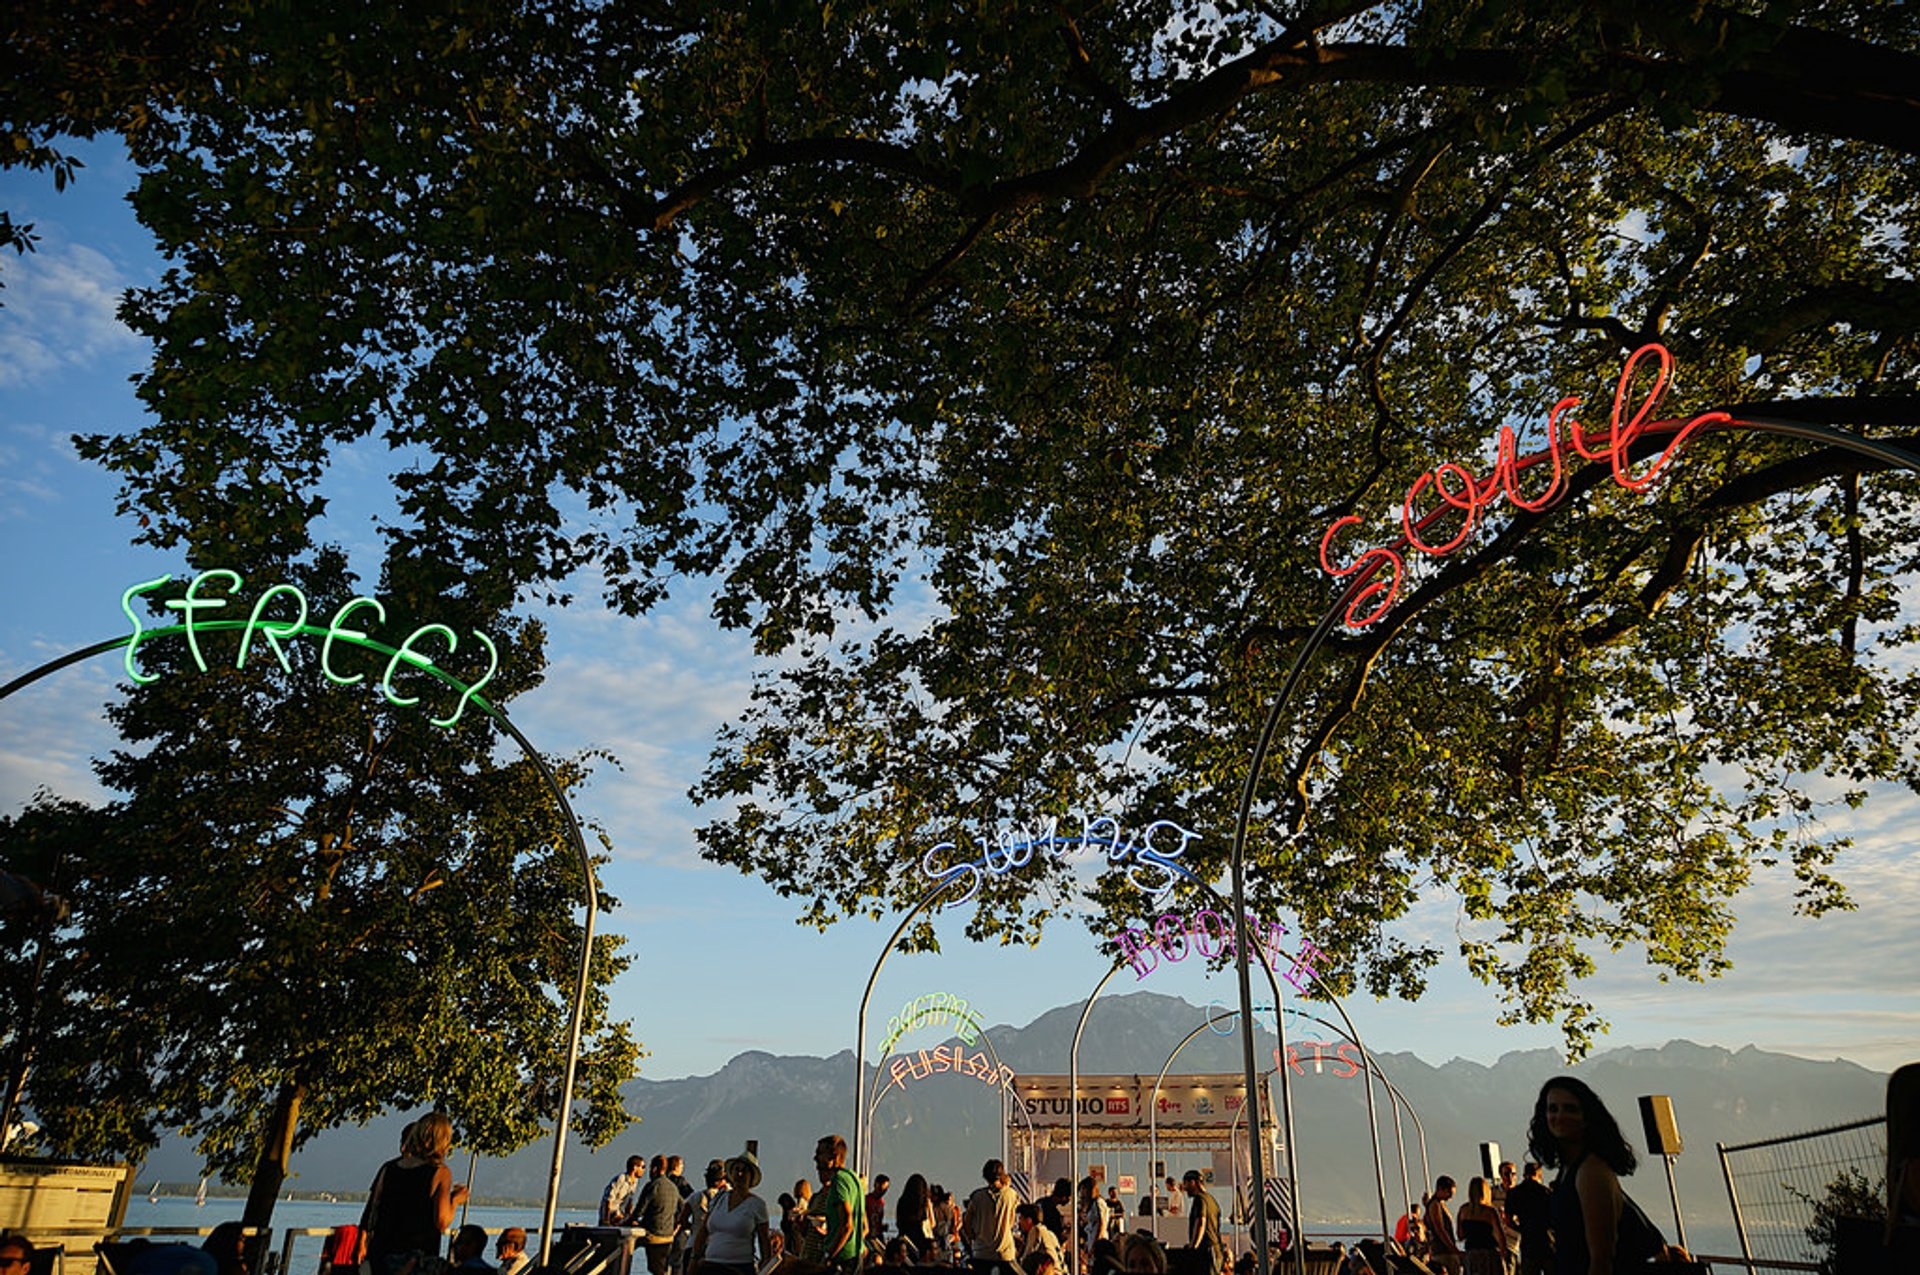 Montreux Jazz Festival in Switzerland - Best Season 2020